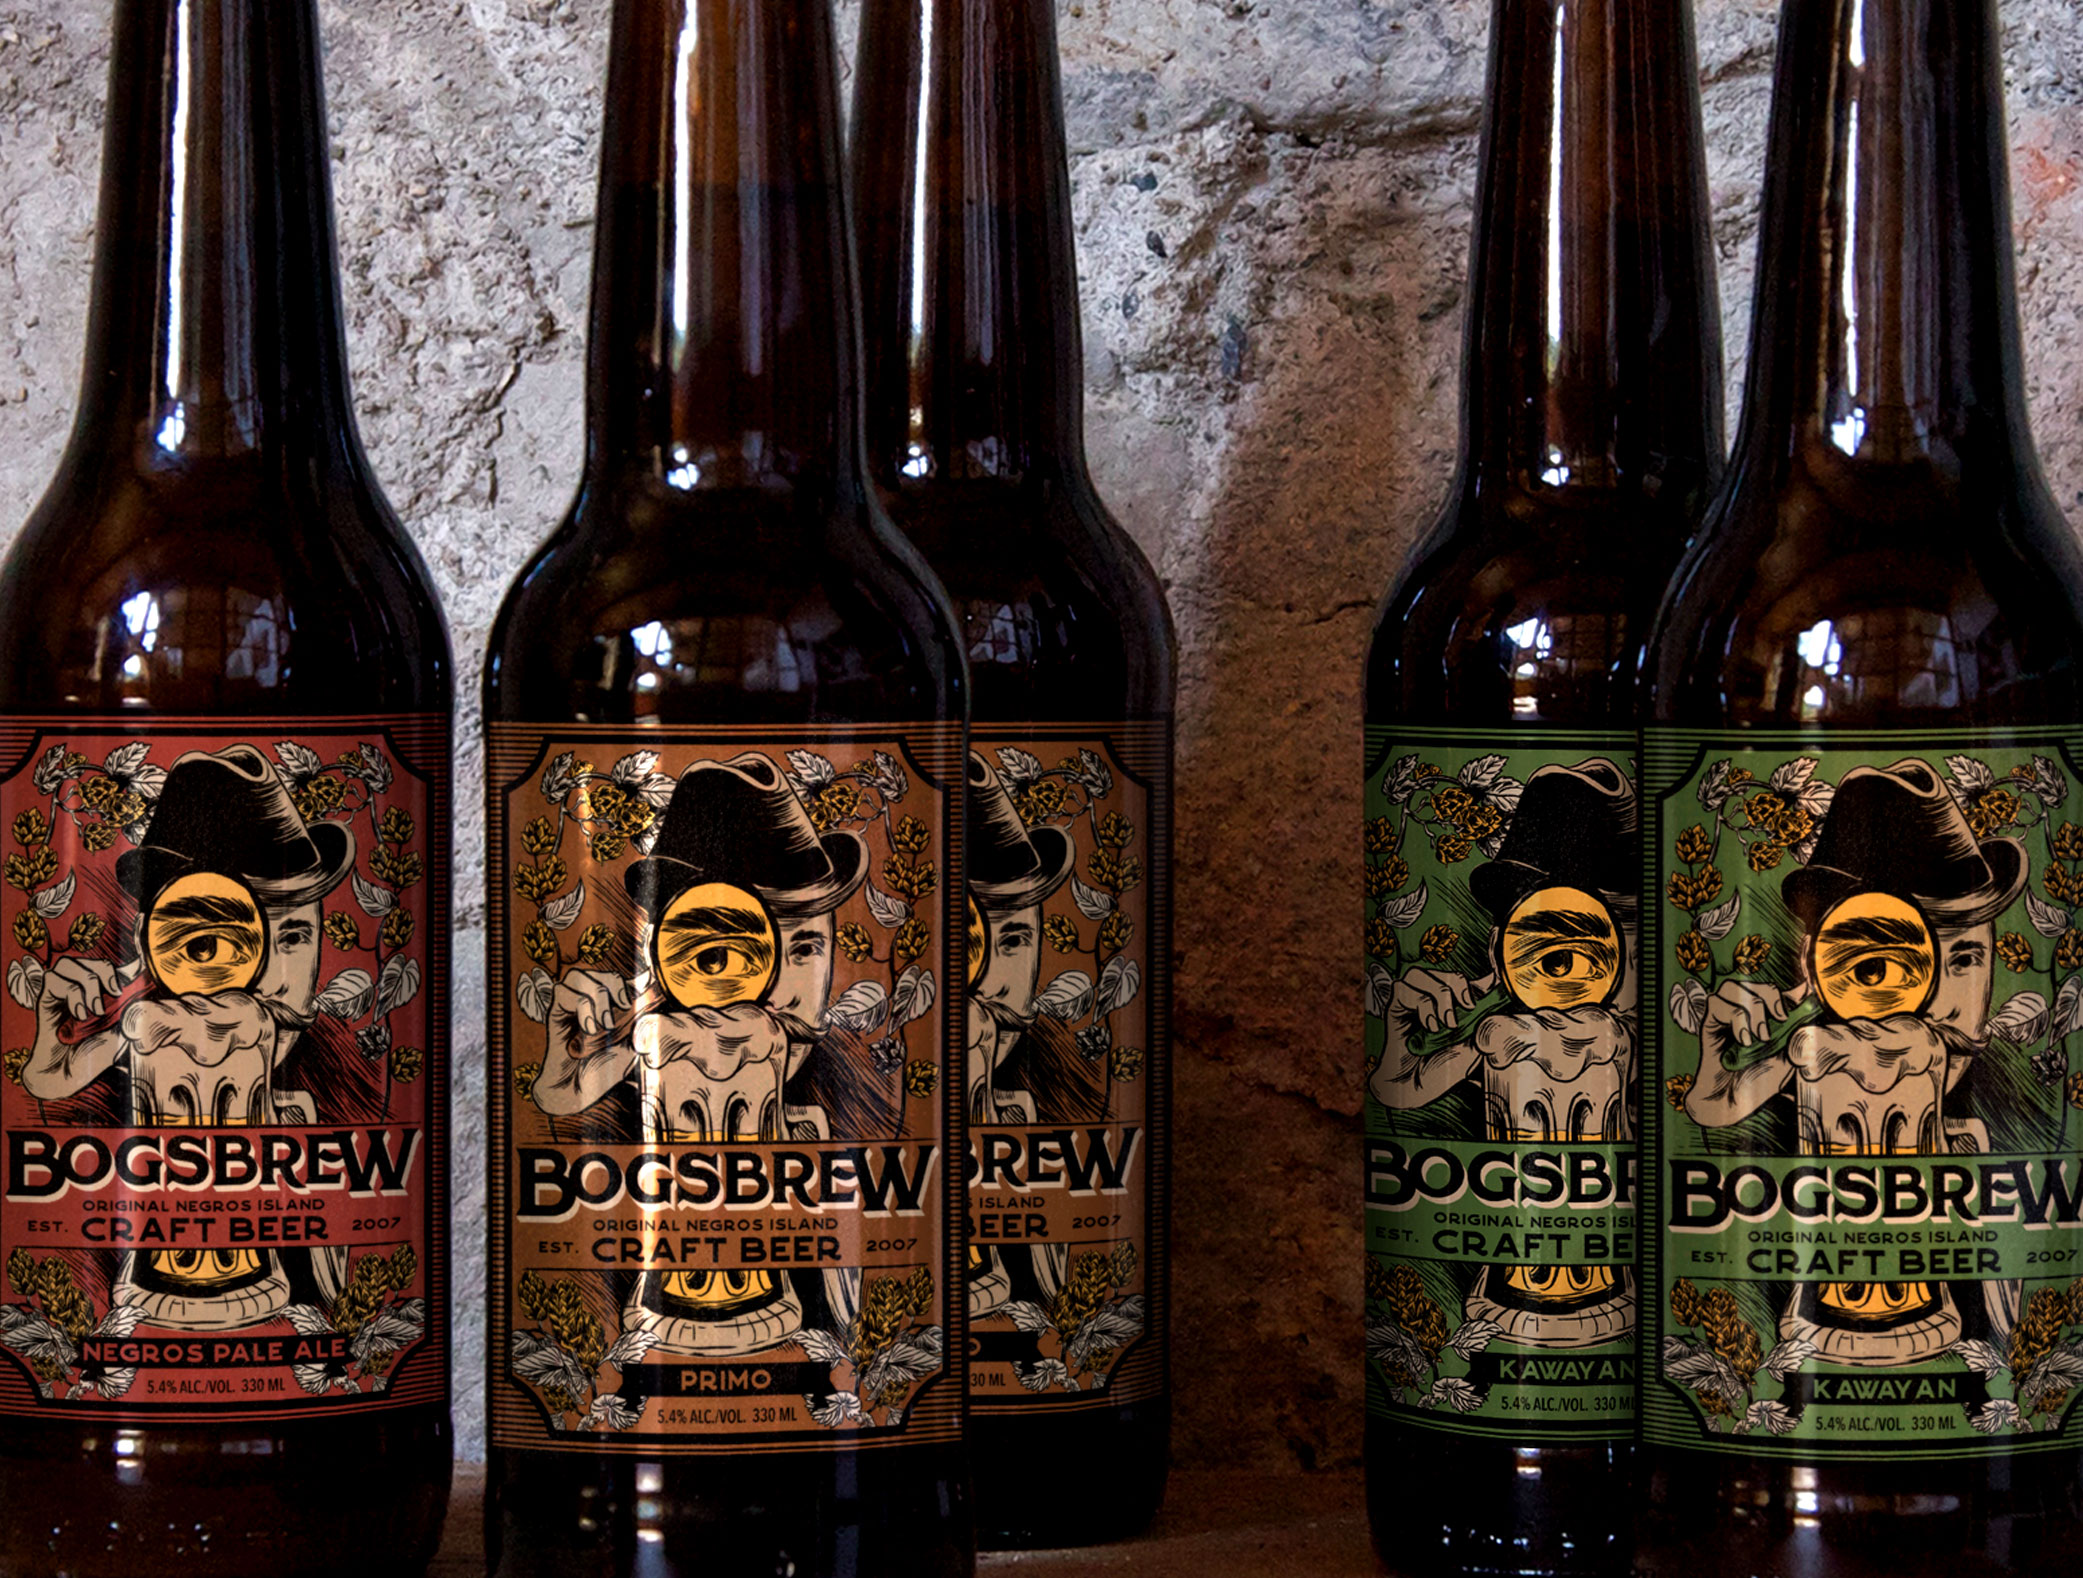 Package Illustration for Bogsbrew Craft Beer from the Philippines / World Brand Design Society